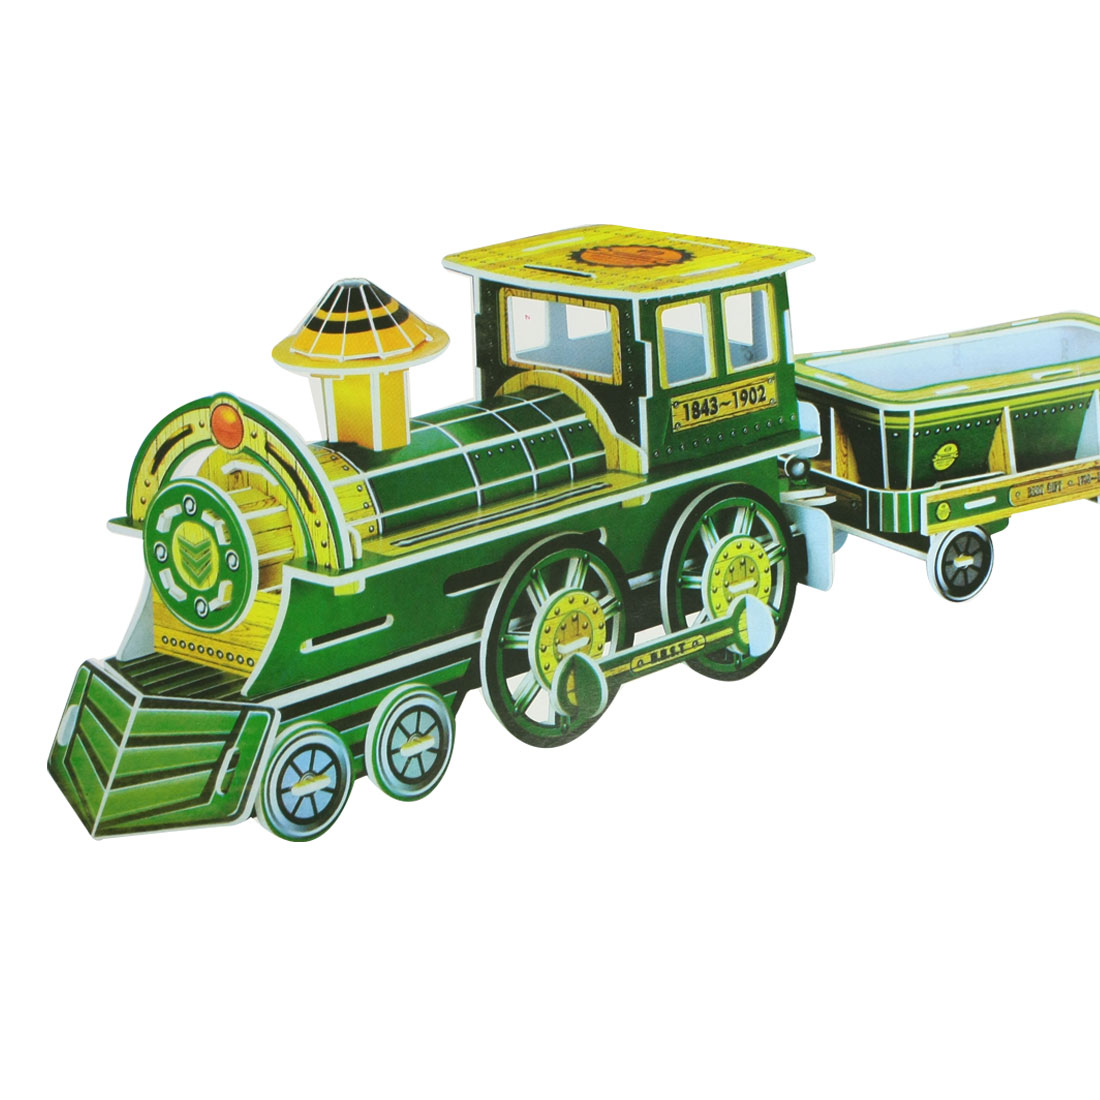 DIY 3D Foam Train Model Piece Together Puzzle Toy for